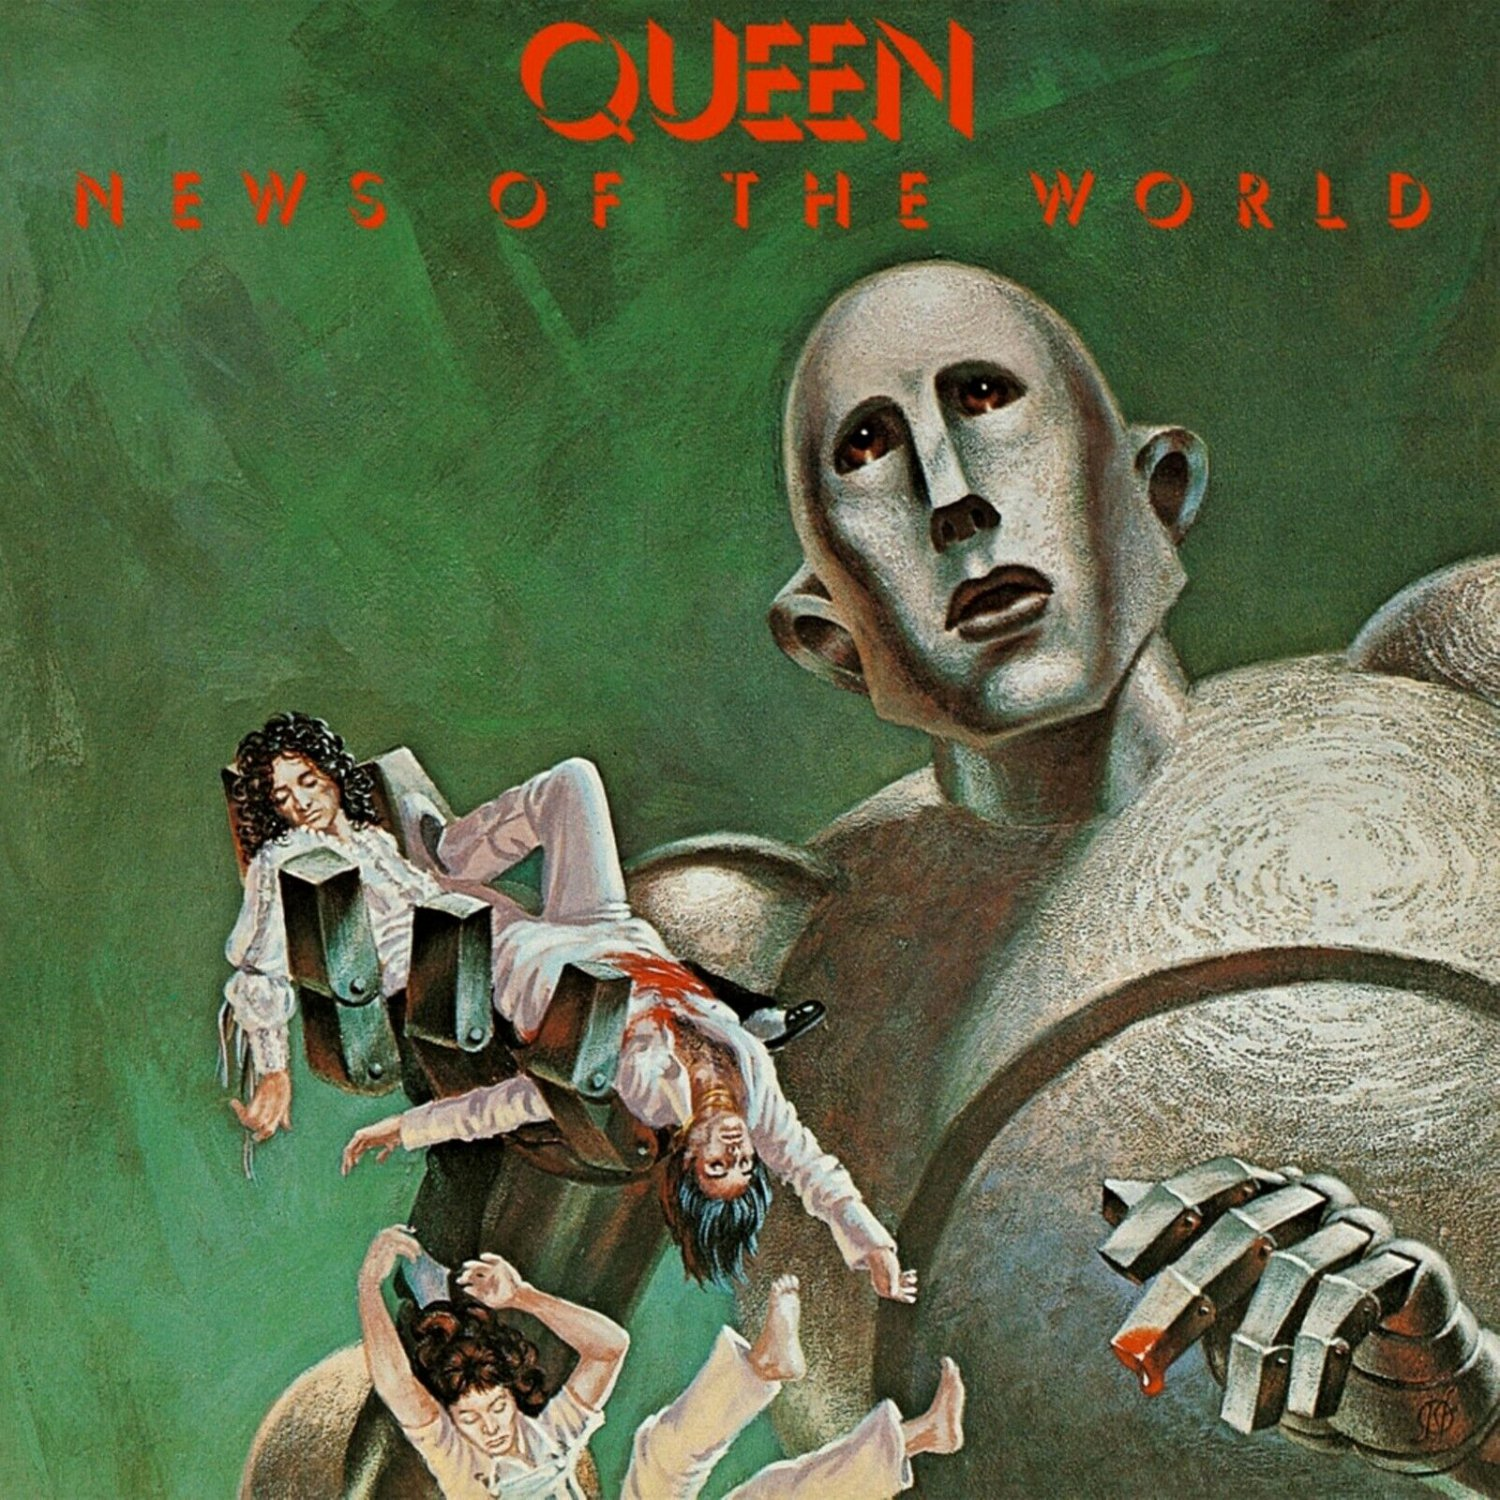 QUEEN News of the New World BANNER Huge 4X4 Ft Fabric Poster Tapestry Flag Print album cover art